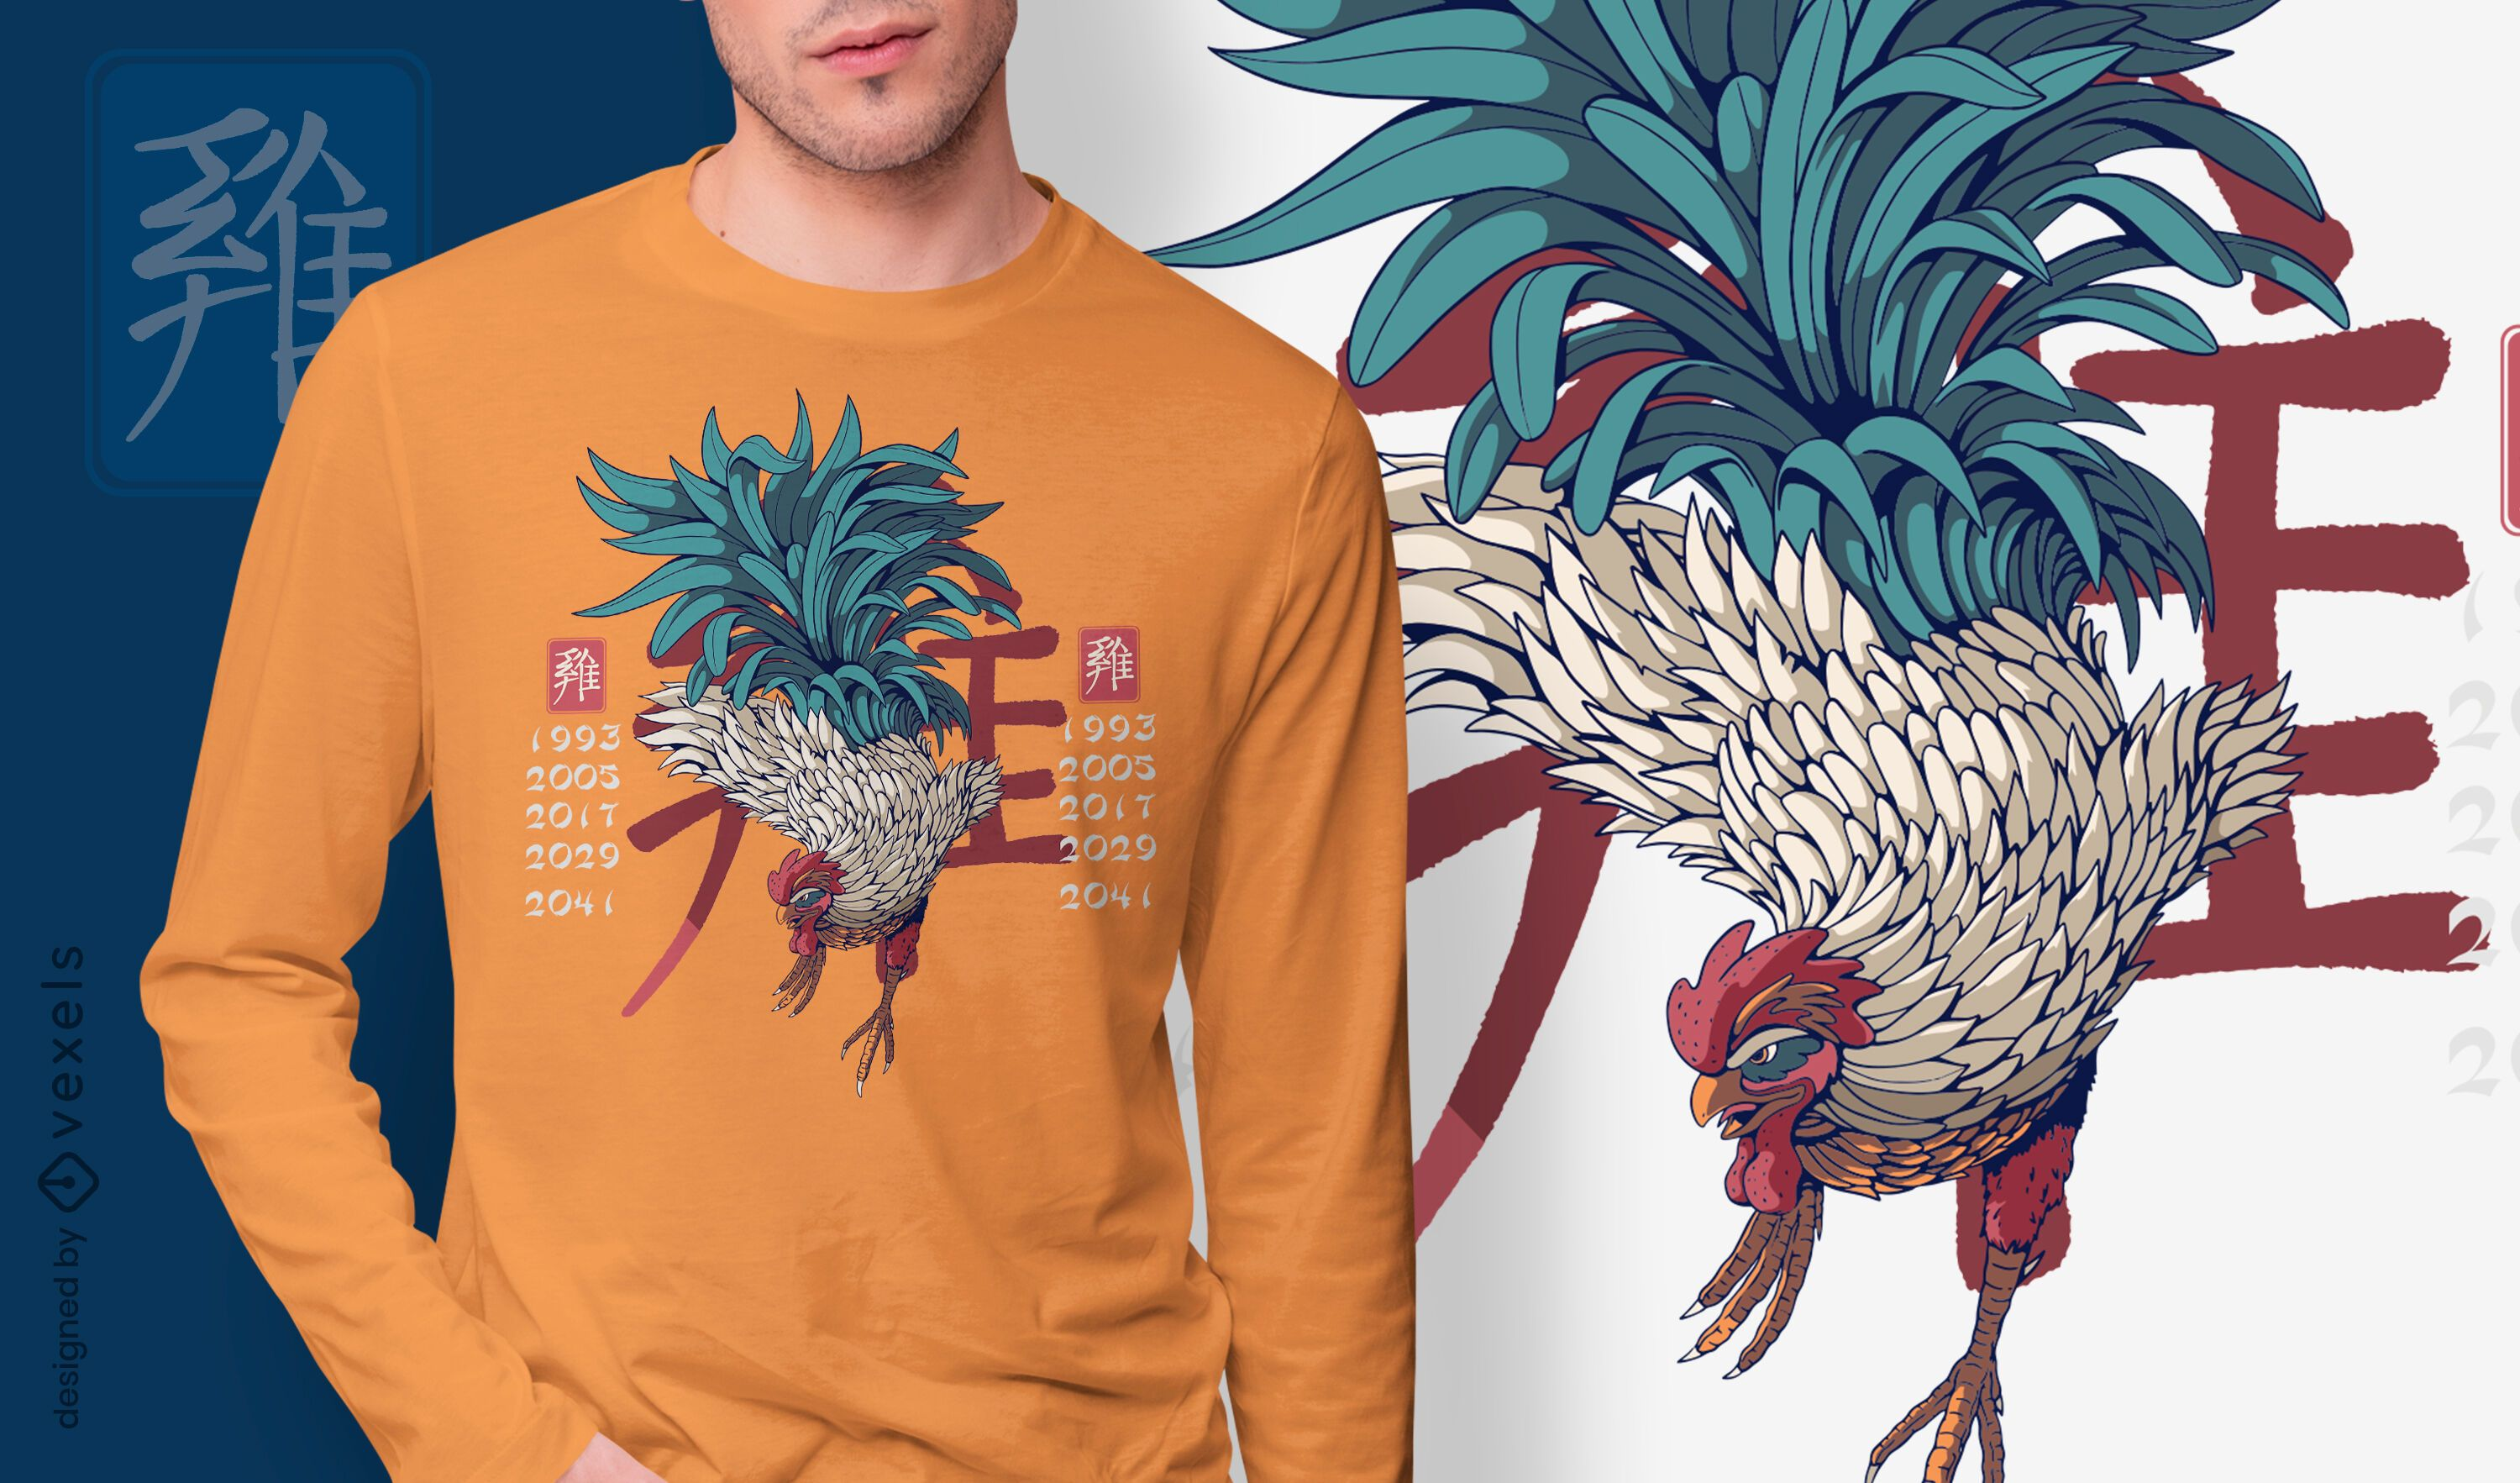 Year of the rooster t-shirt design